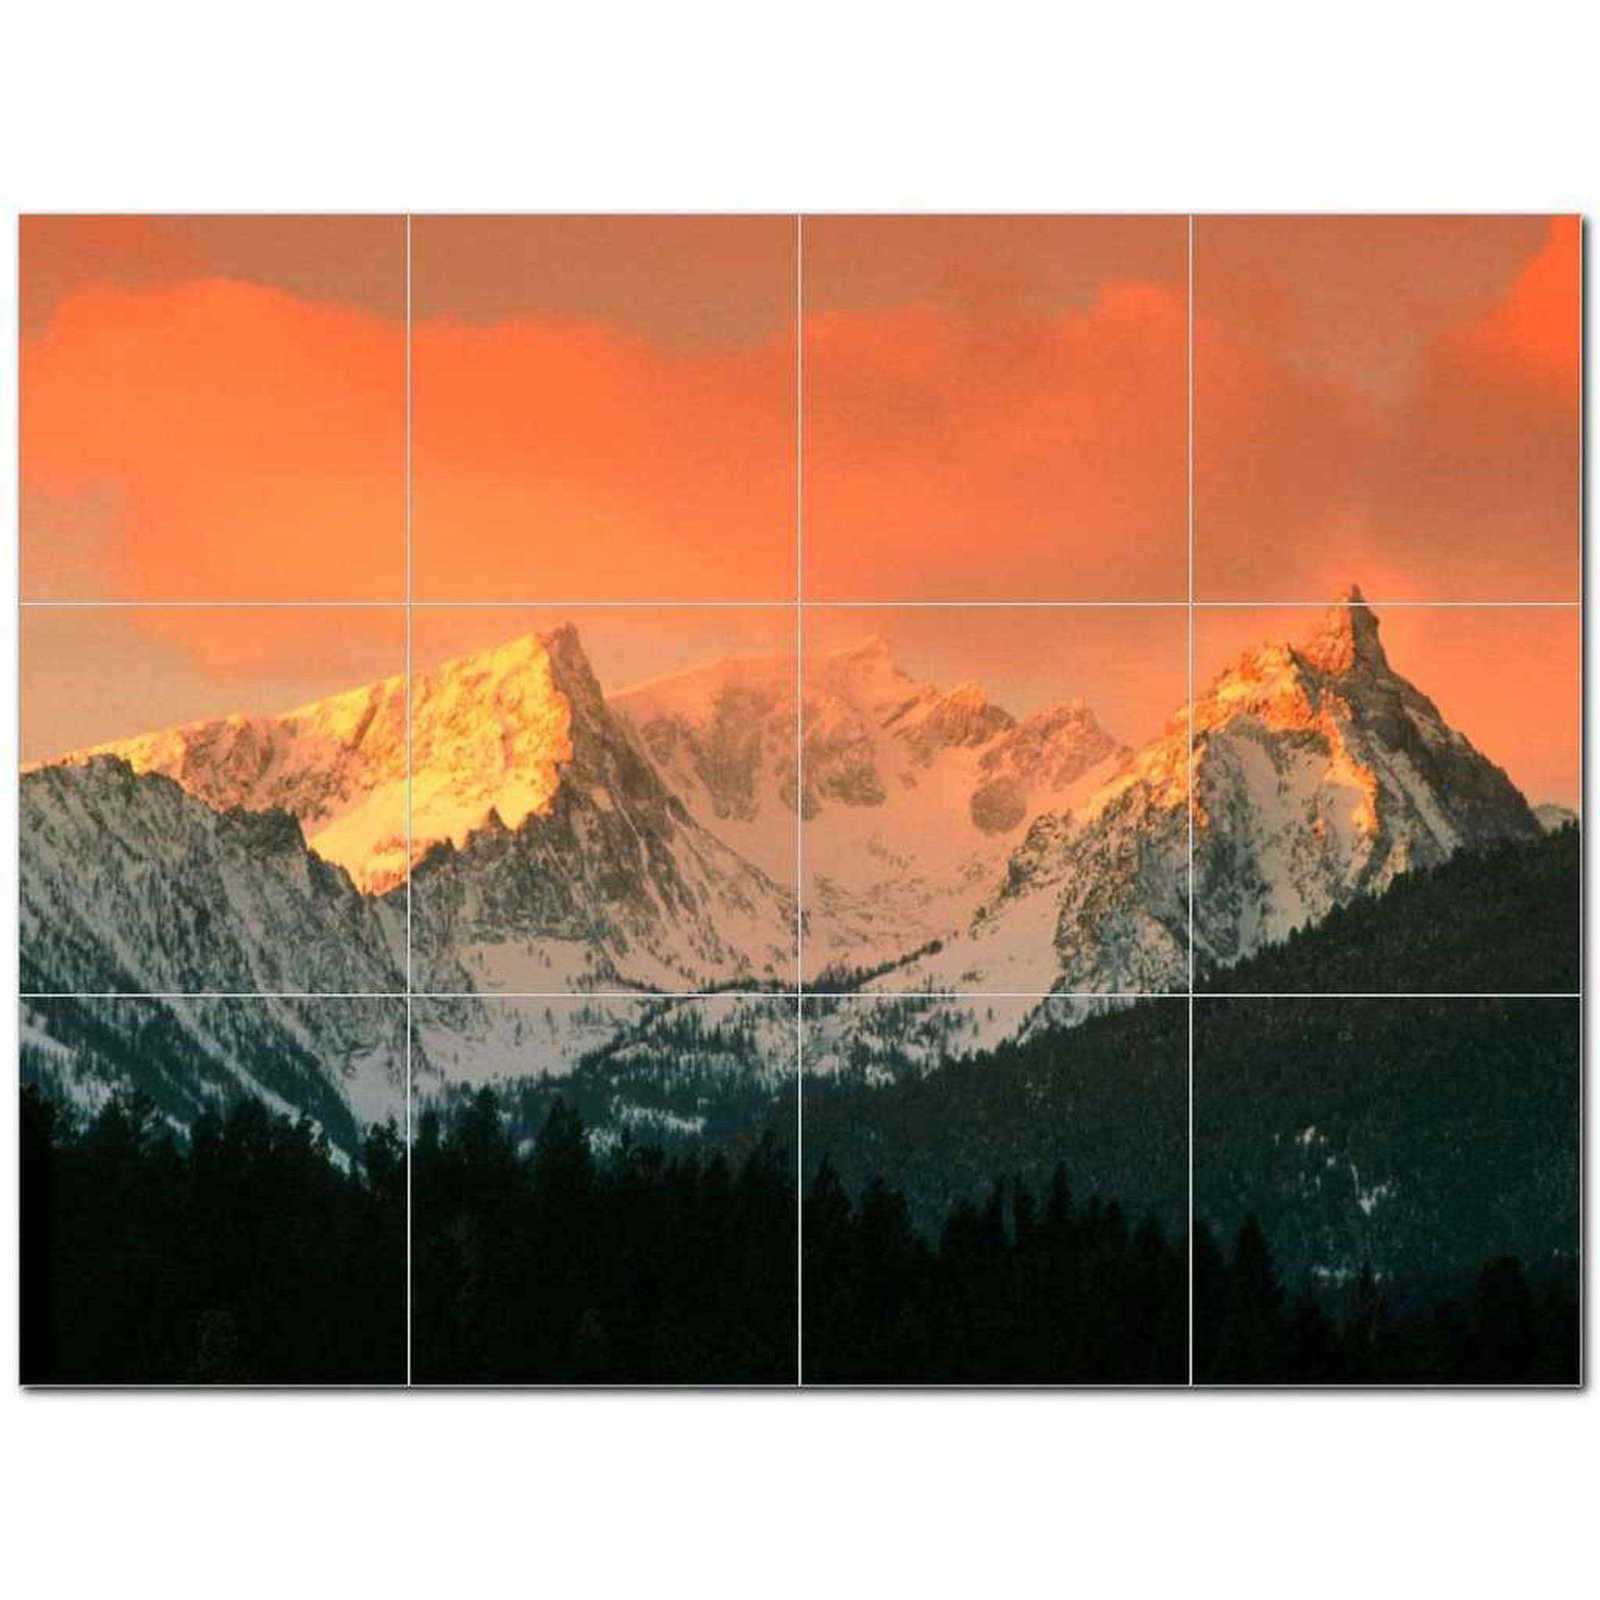 Primary image for Mountain Photo Ceramic Tile Mural Kitchen Backsplash Bathroom Shower BAZ405510